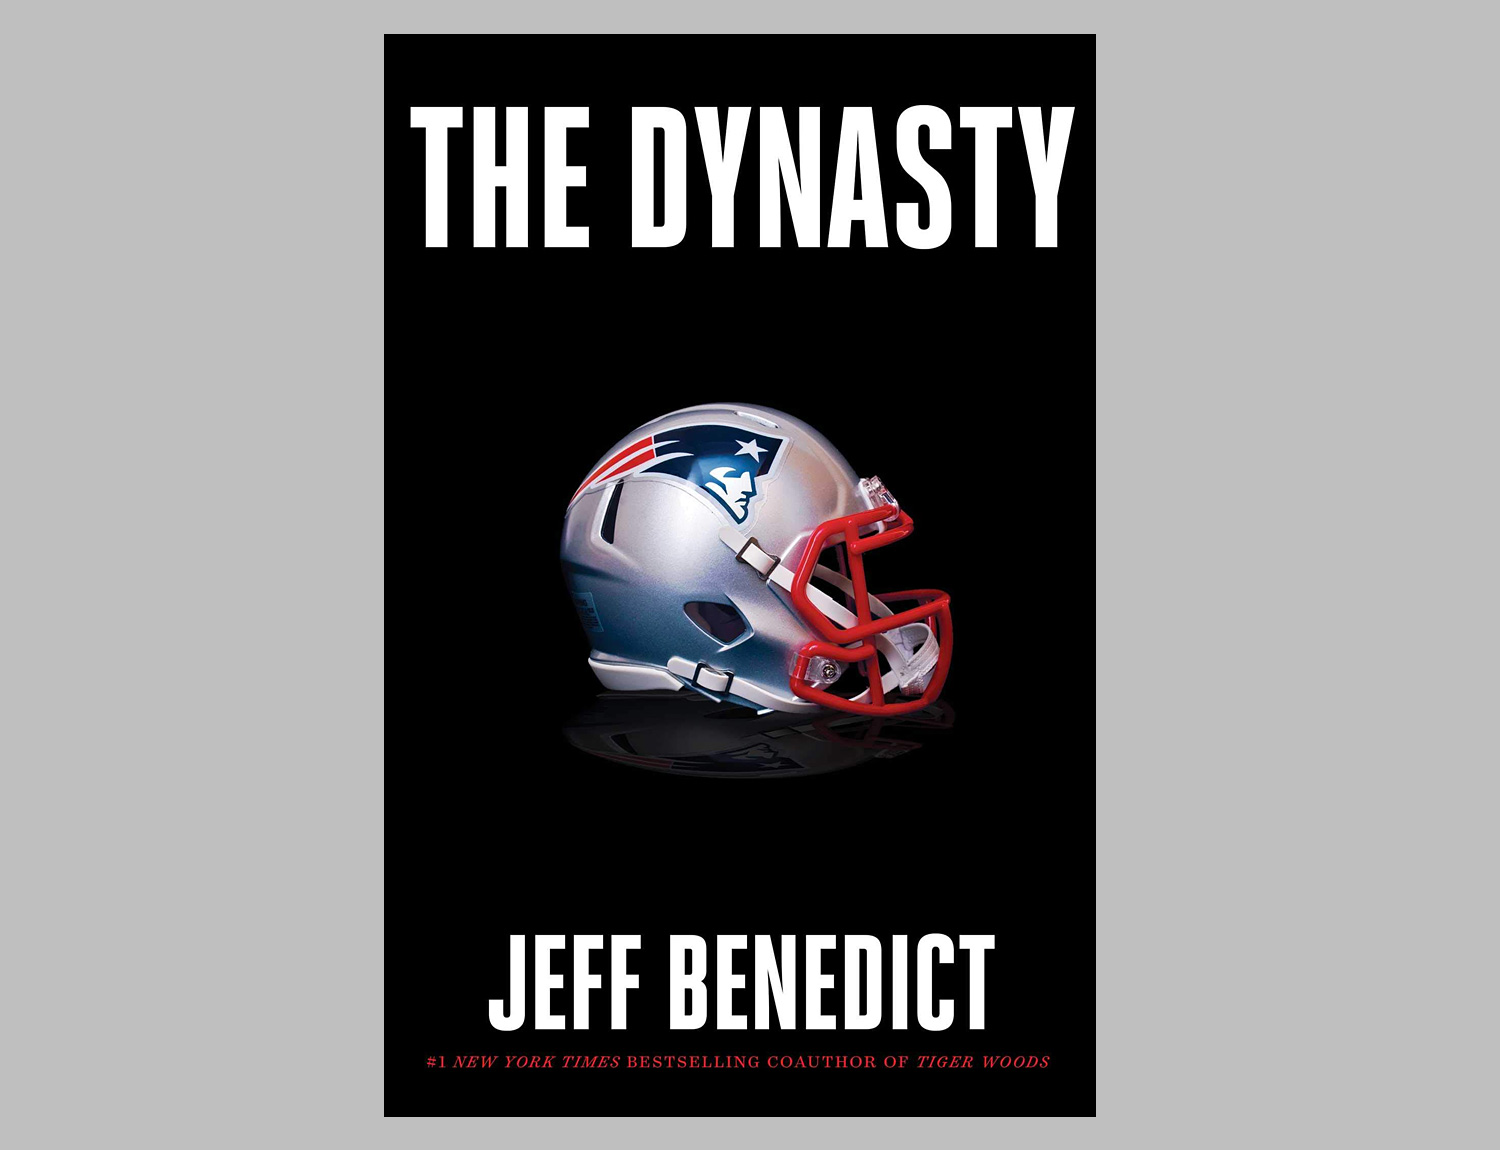 The Dynasty Details Patriots Football Past & Present at werd.com